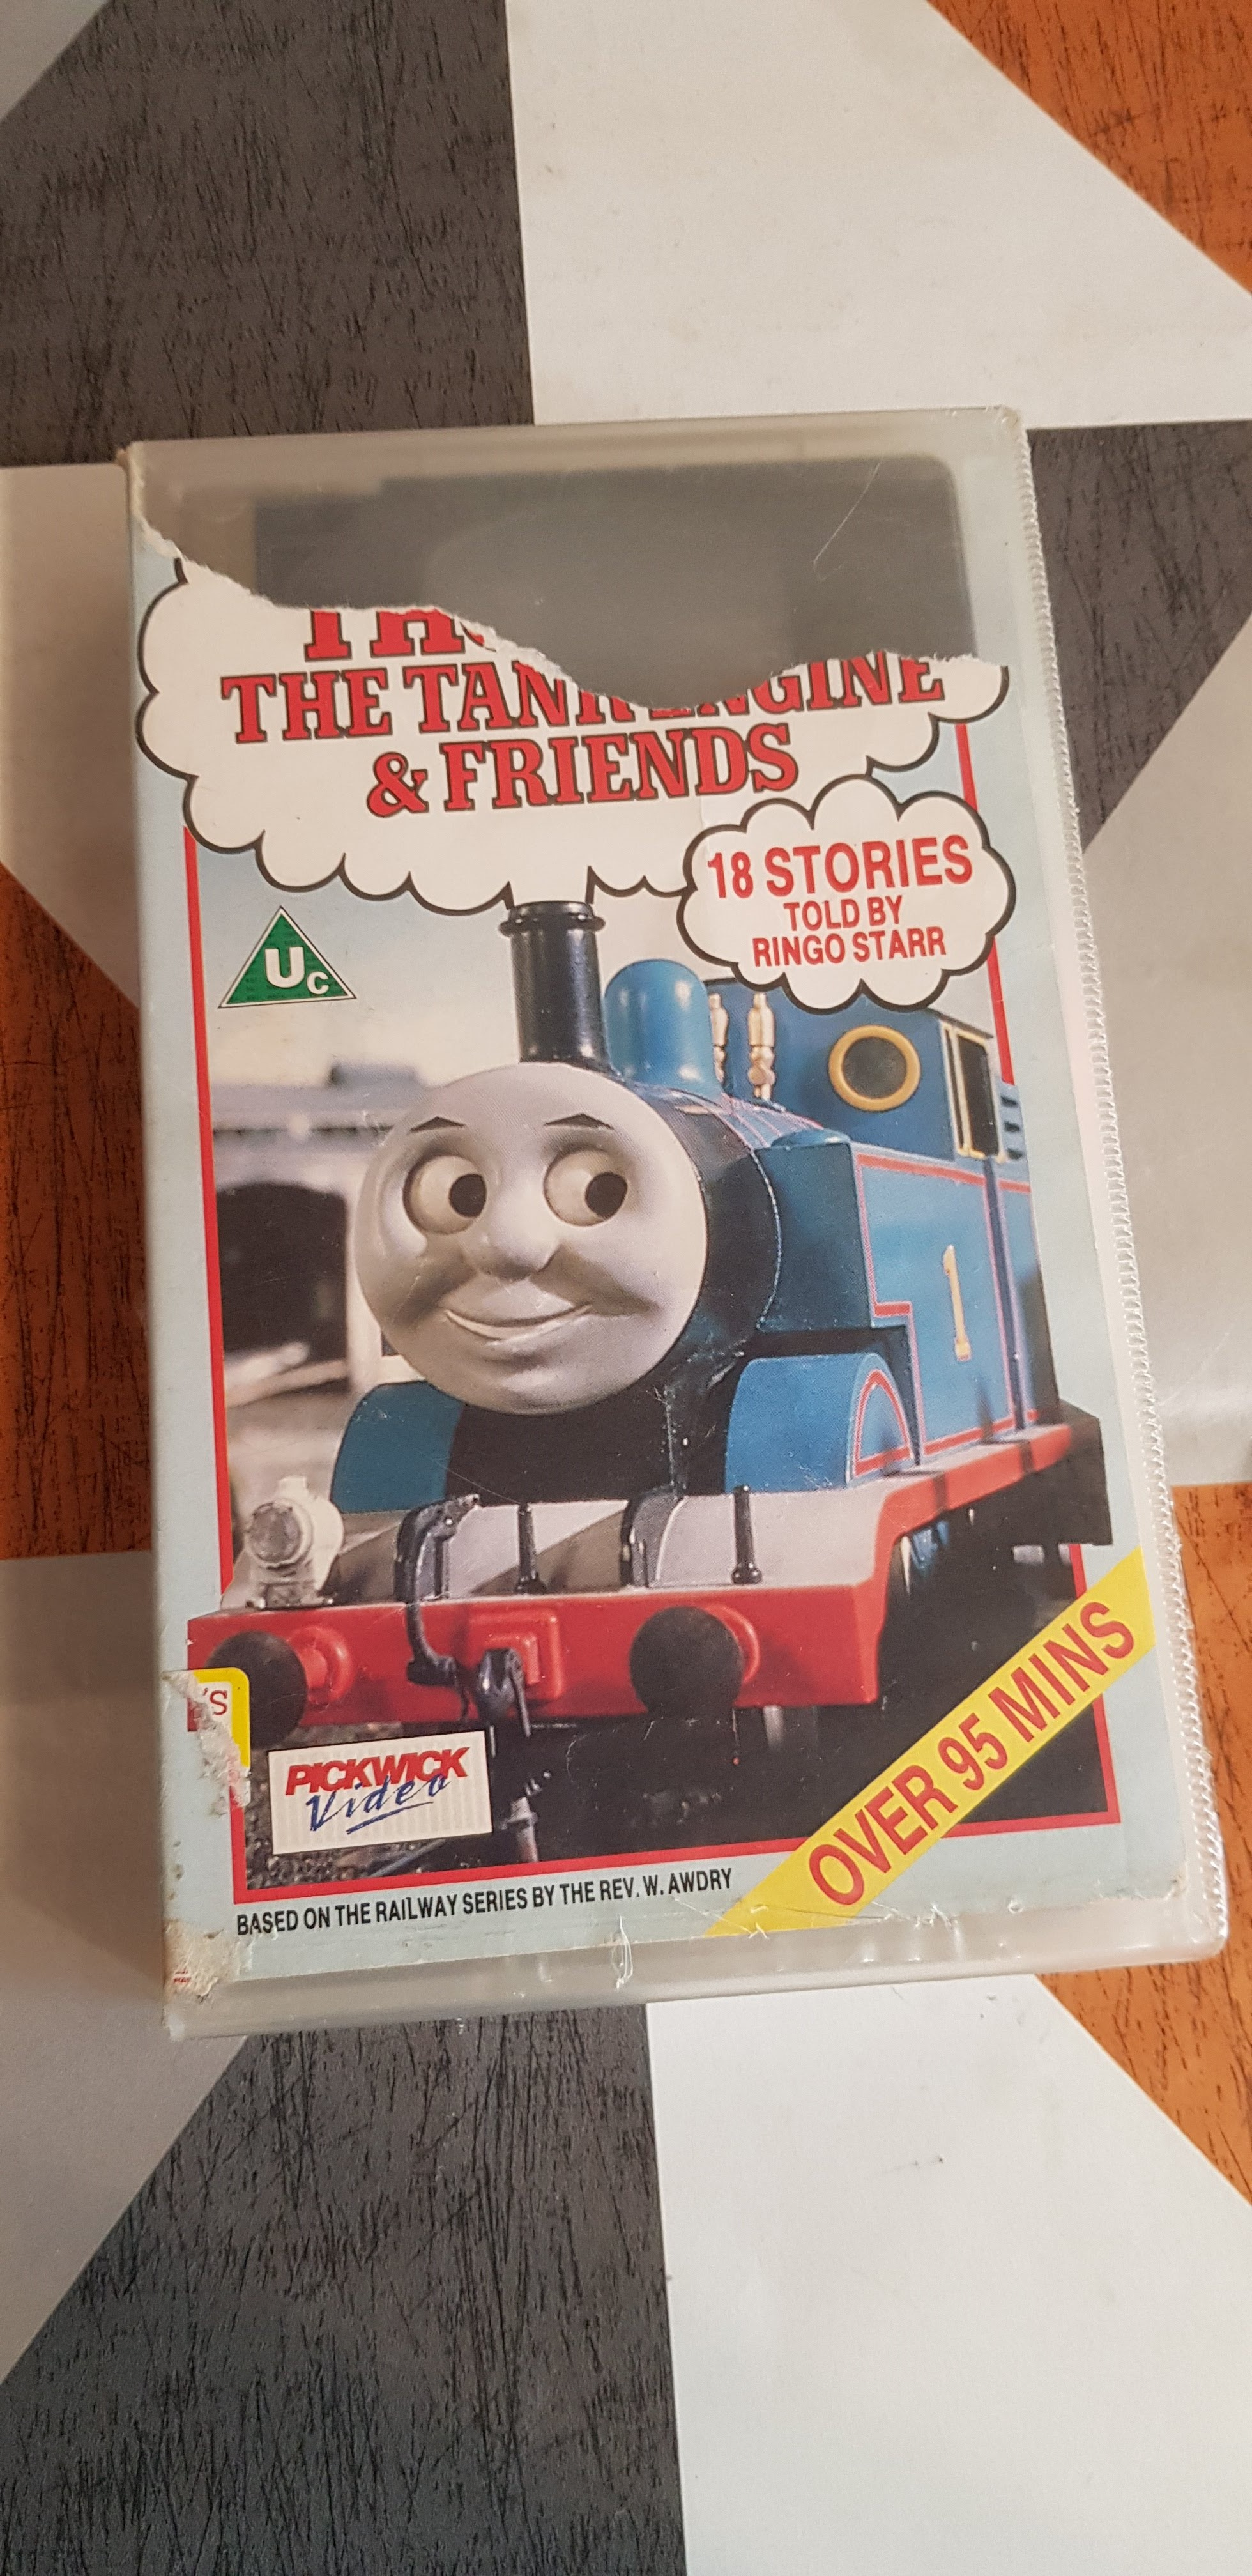 The Best Of Thomas Tank Engine And Friends Ringo Starr VHS Video Tape TBLO